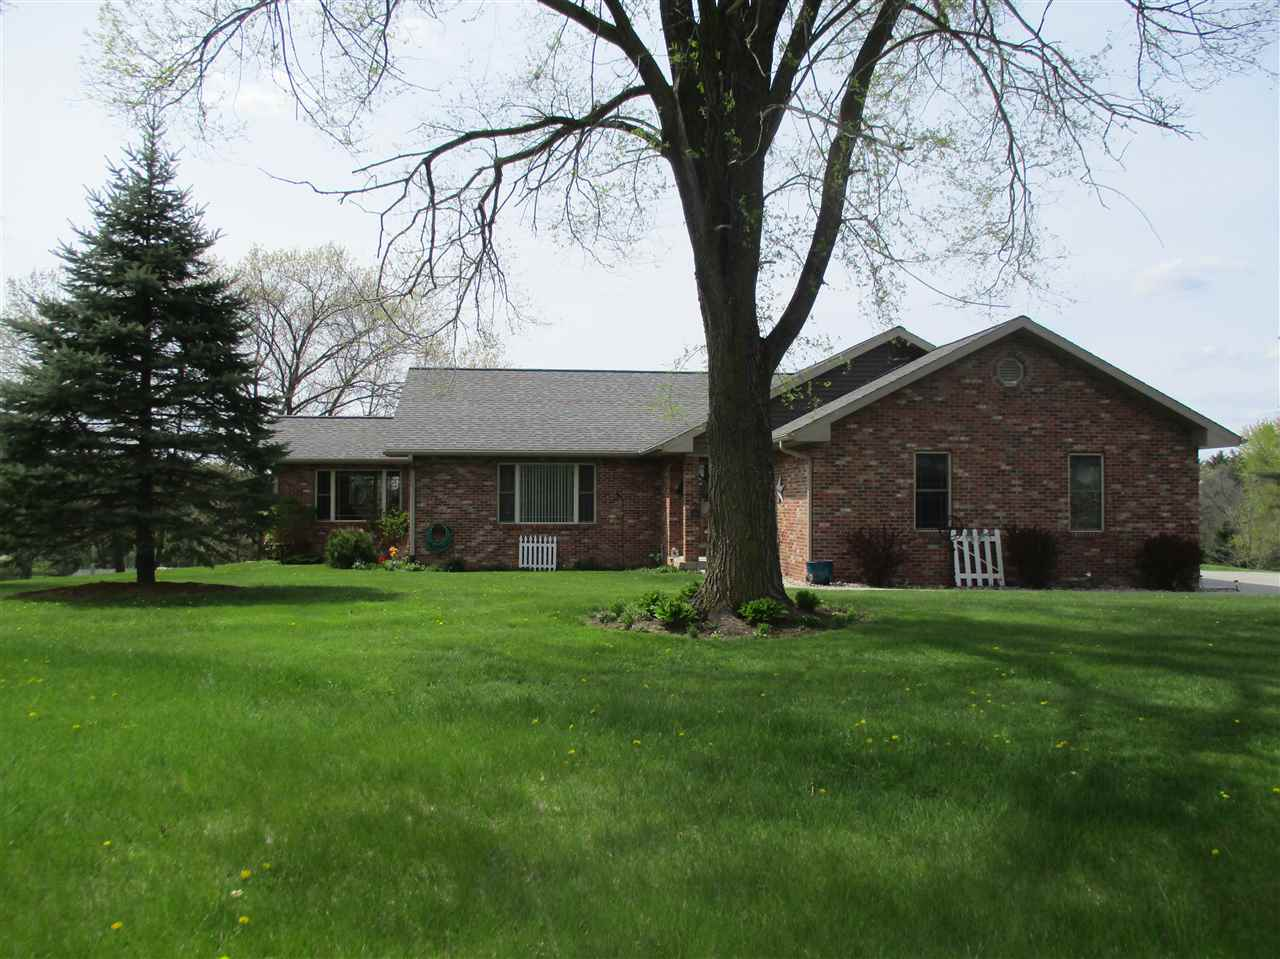 S3008 Aults Rd, Excelsior, WI 53959